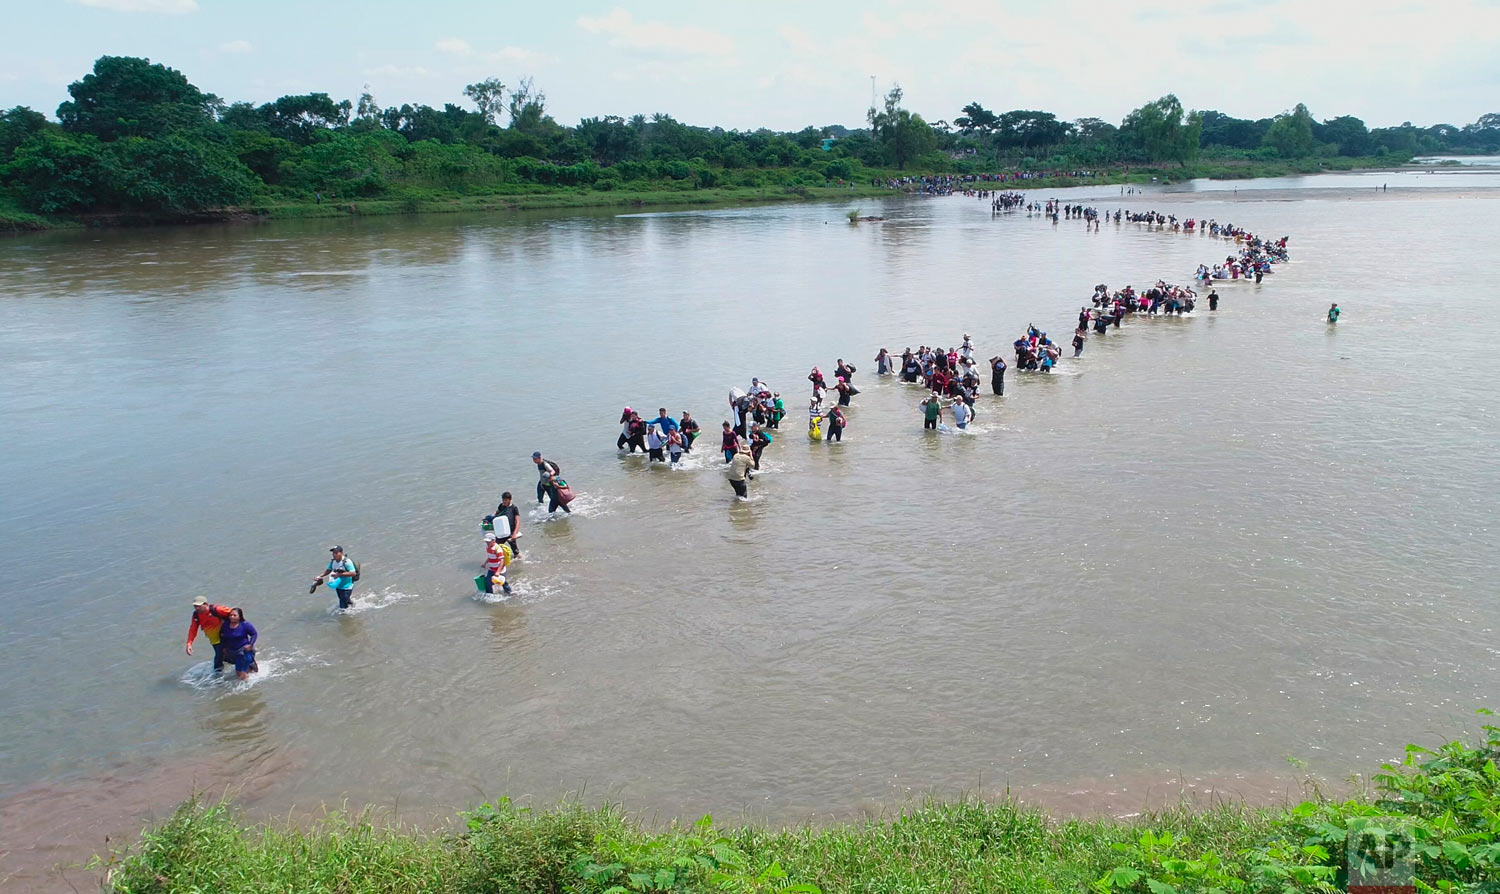 In this Nov. 2, 2018 photo, migrants from El Salvador traveling in a caravan cross the Suchiate River, the border between Guatemala and Mexico, after Mexican authorities told them at the border crossing that they would have to show passports and visas in groups of 50 for processing. Afraid they'd be deported, they waded across the river to enter Mexico. (AP Photo/Oscar Rivera)